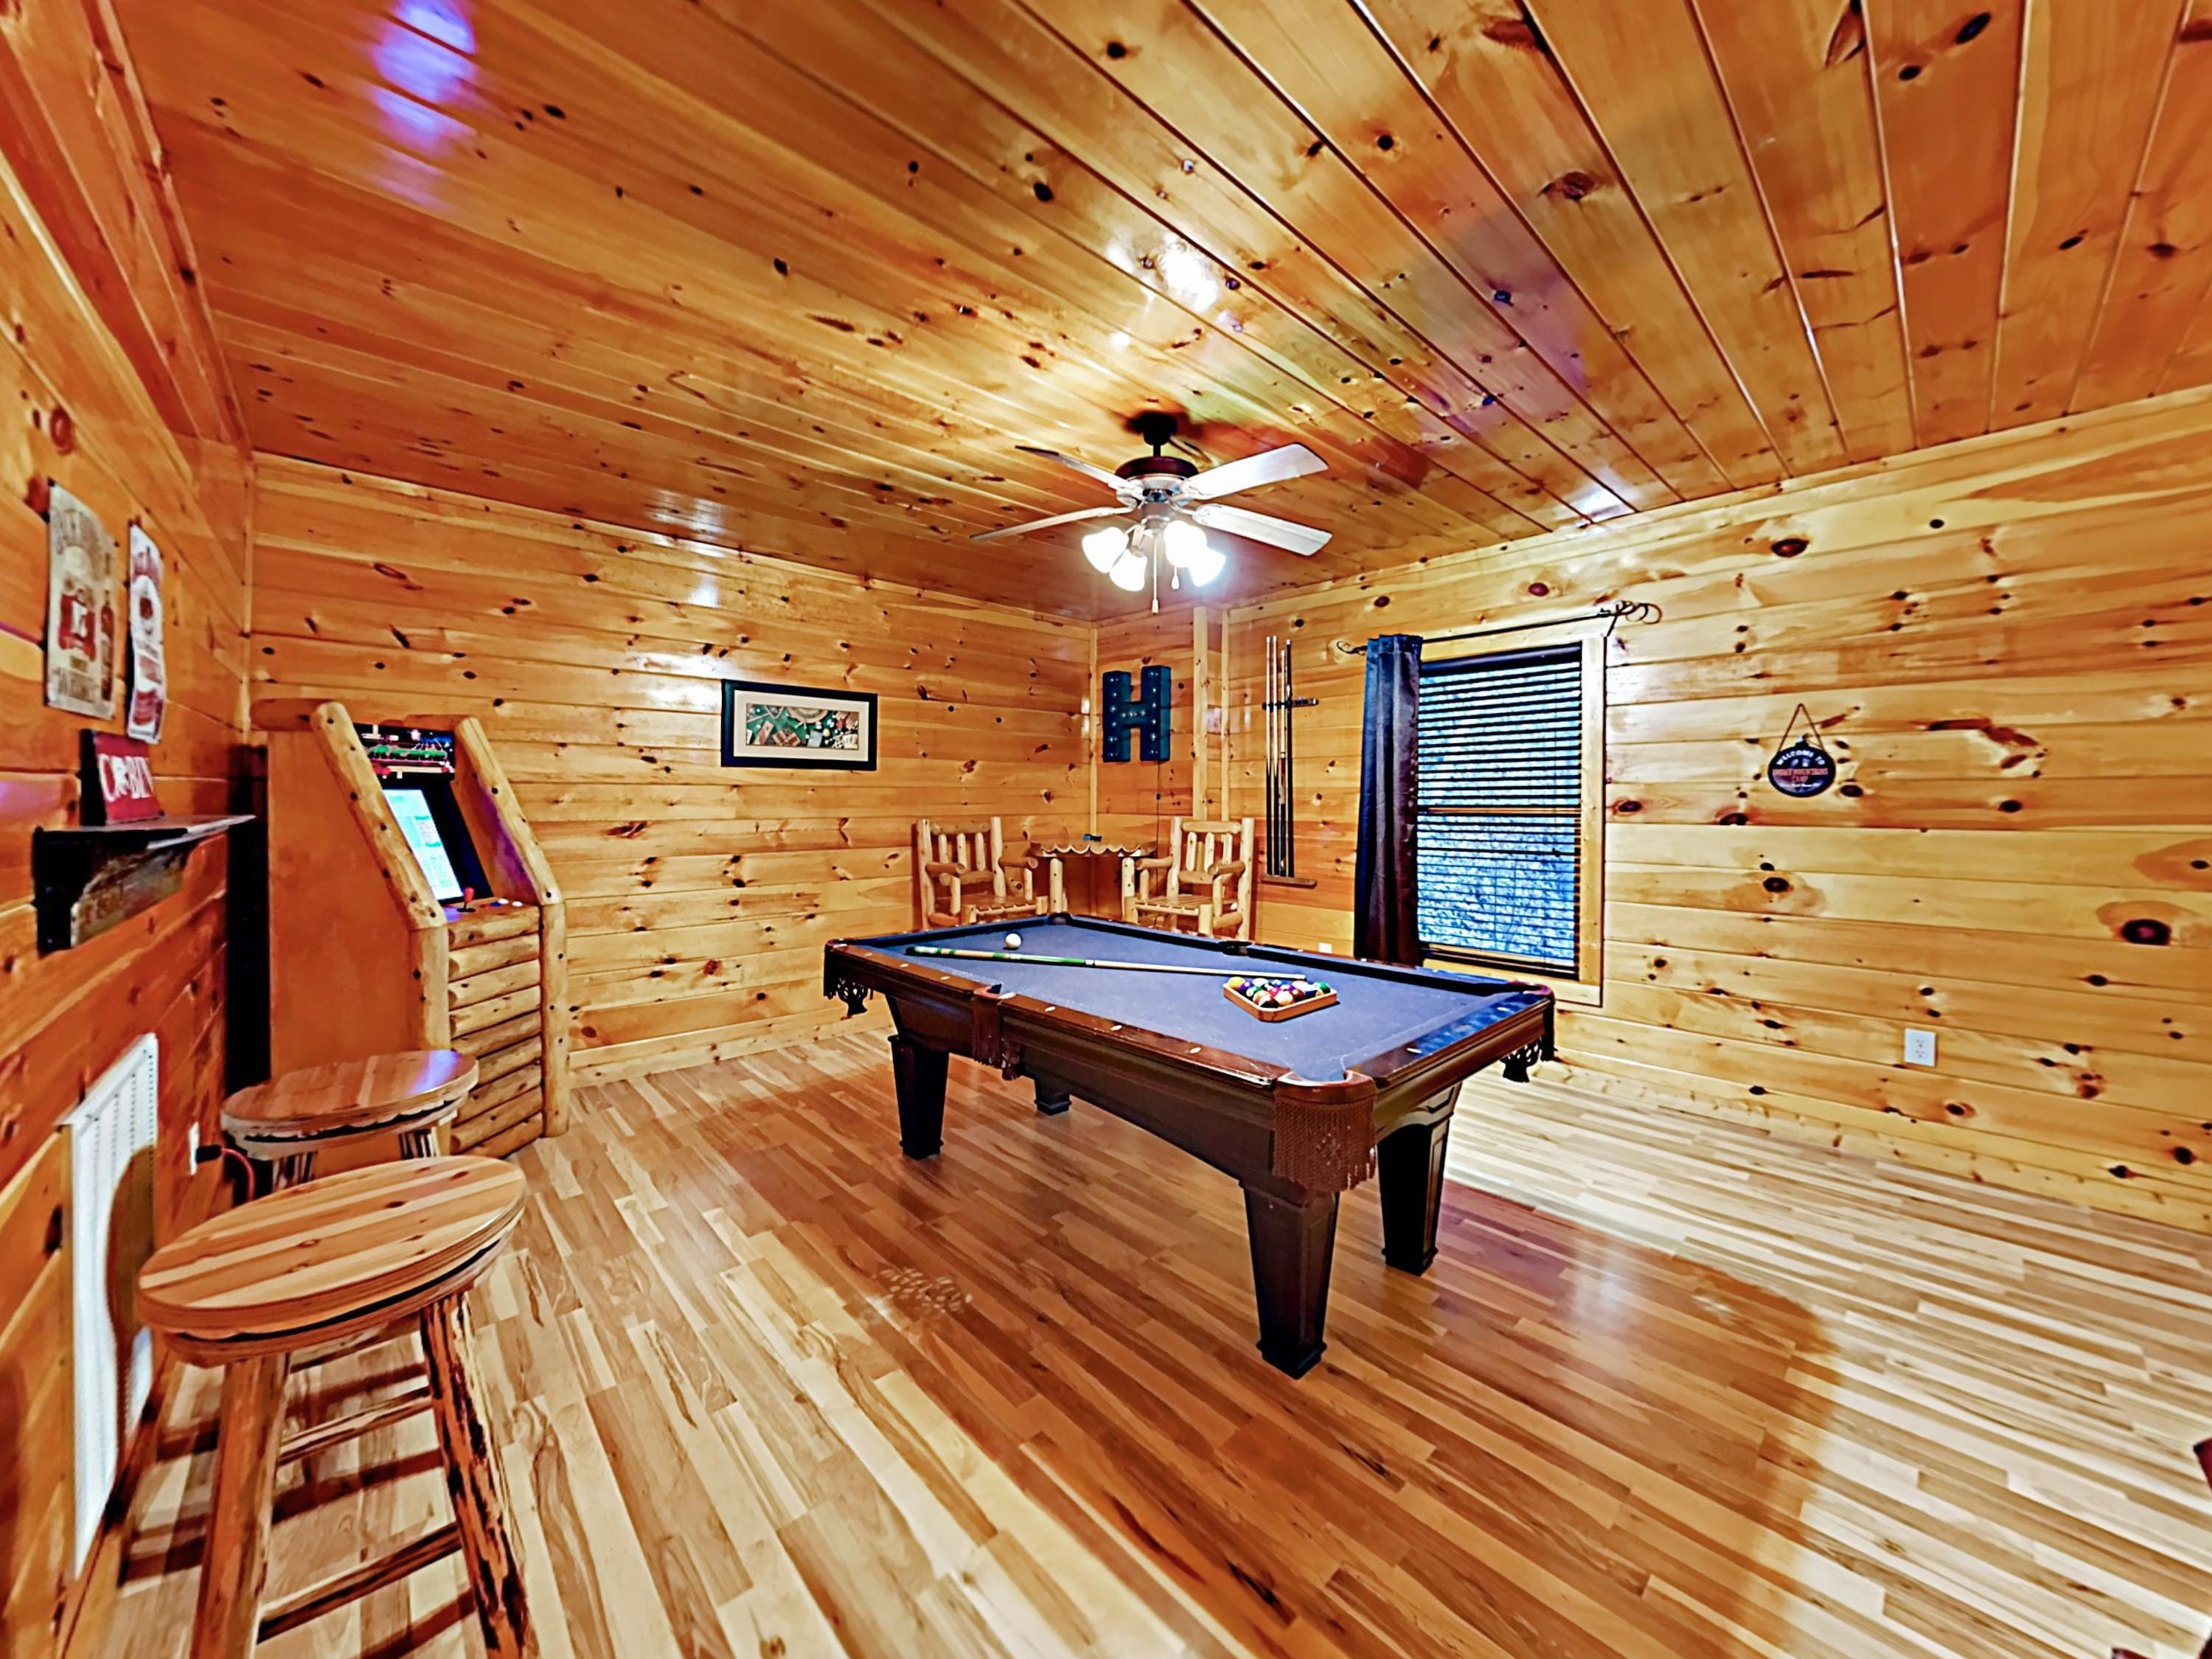 The game room features a pool table, arcade system, and flat-screen TV (not pictured).